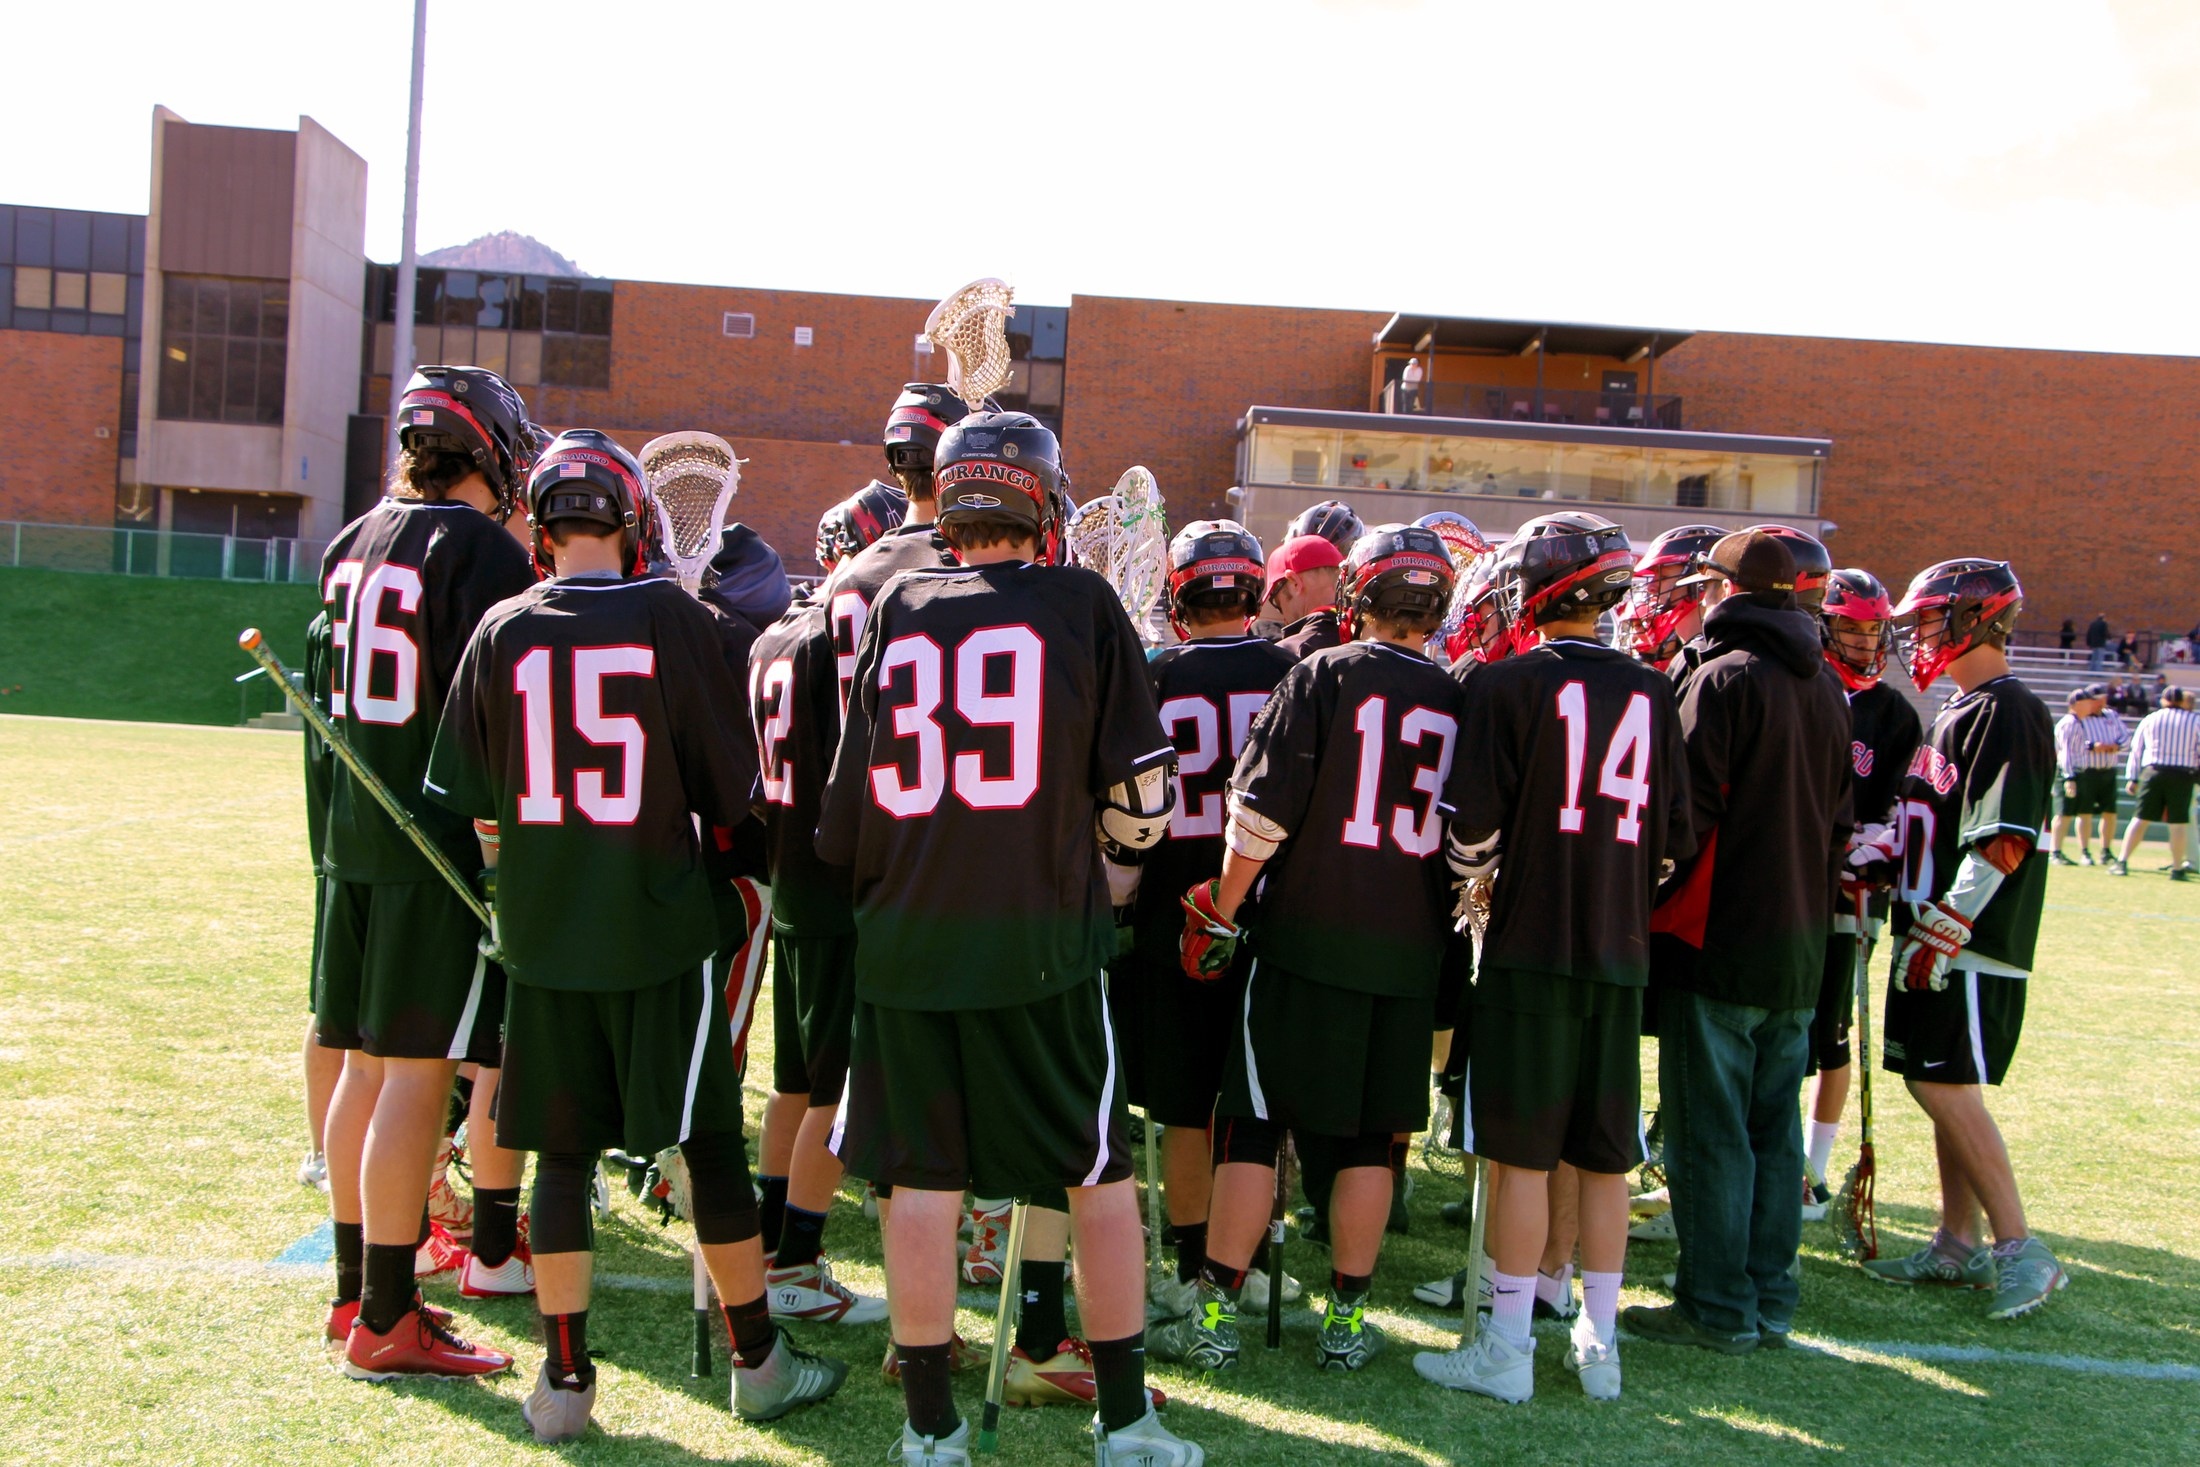 DHS Boys Lacrosse team gathers up in a huddle at half time.